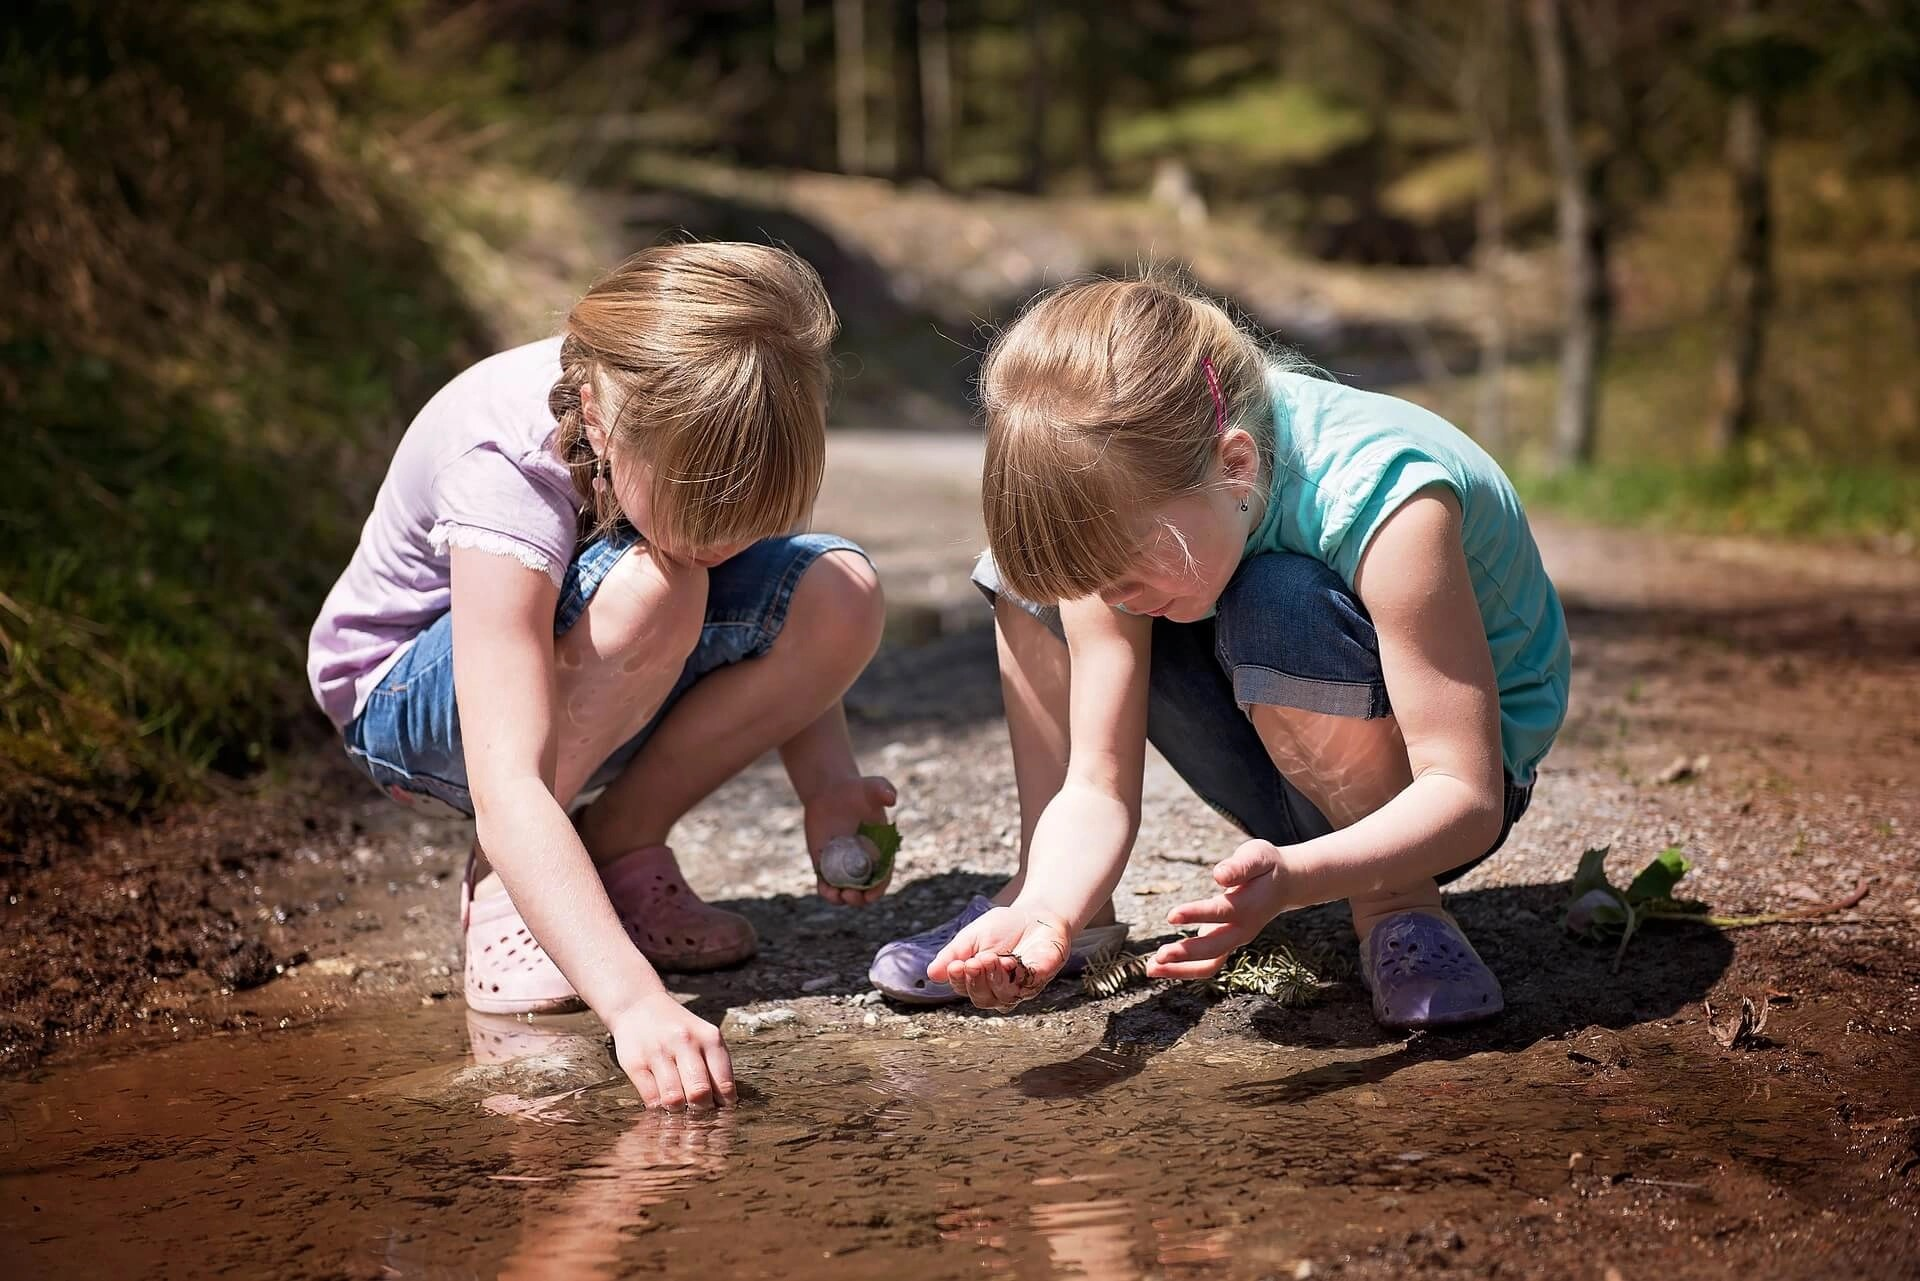 Worried about summer slide? What activities will really help get your children get ready for school in the fall? What will give them an academic advantage? Read what the studies say. The answer may surprise you.